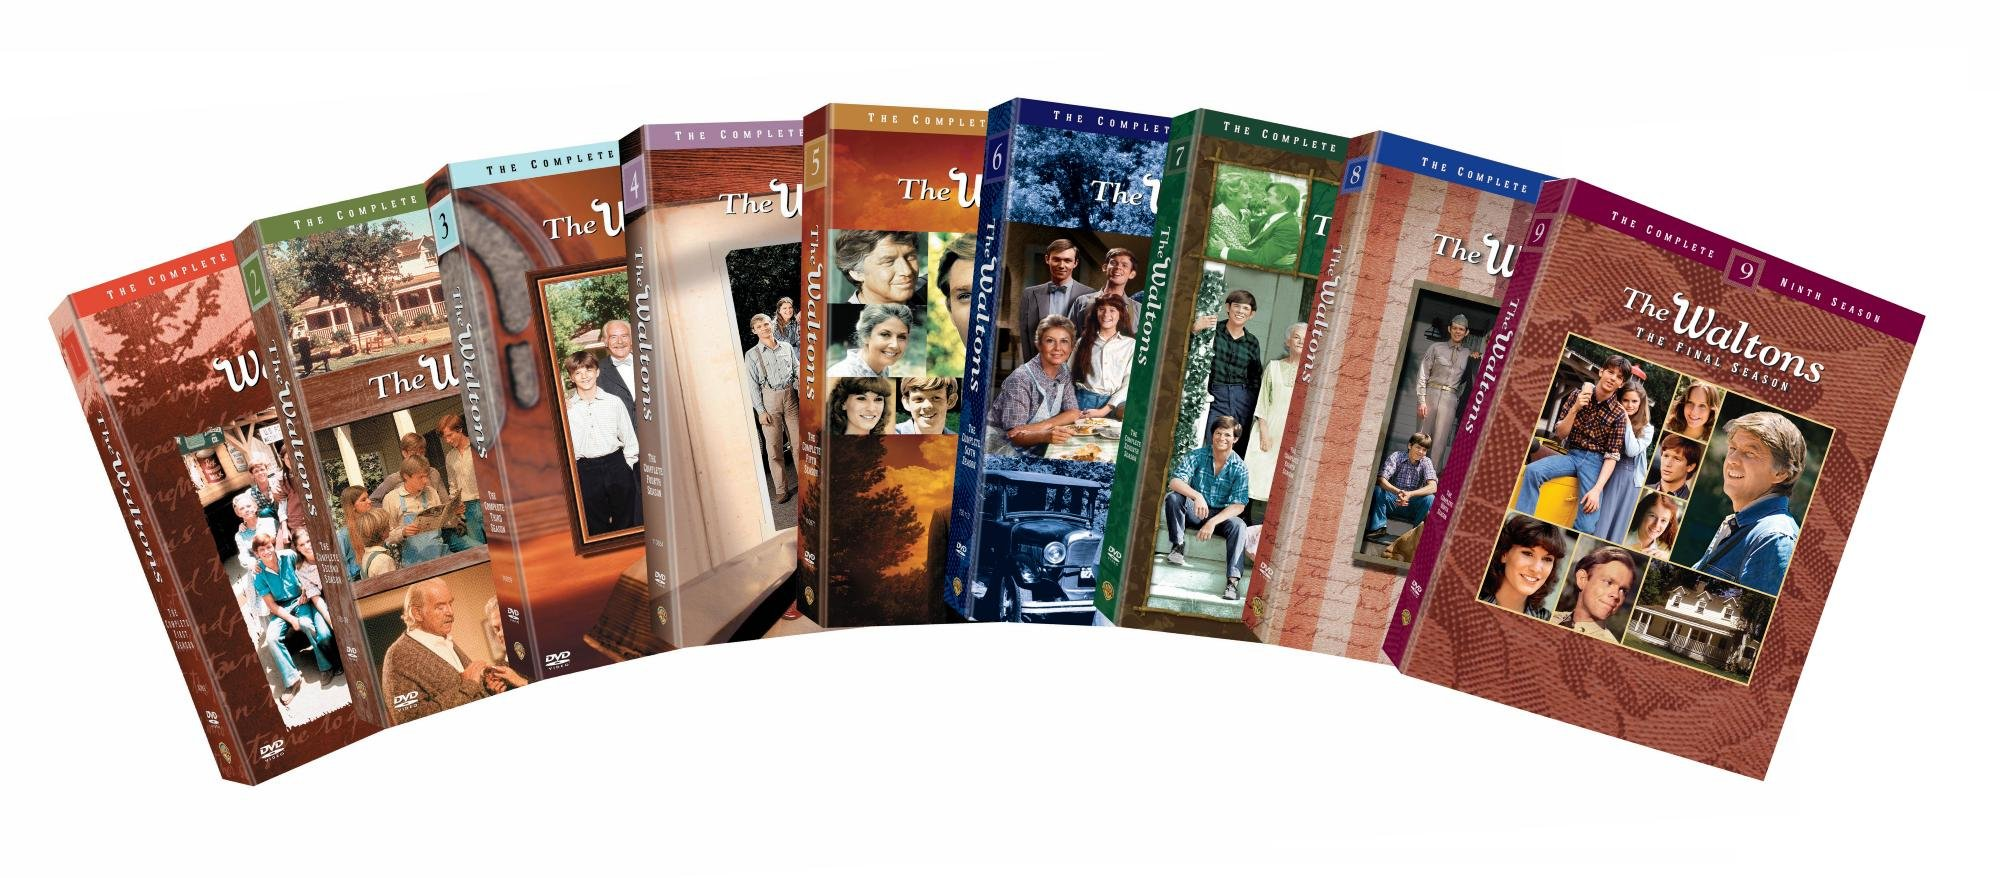 The Waltons: The Complete Seasons 1-9